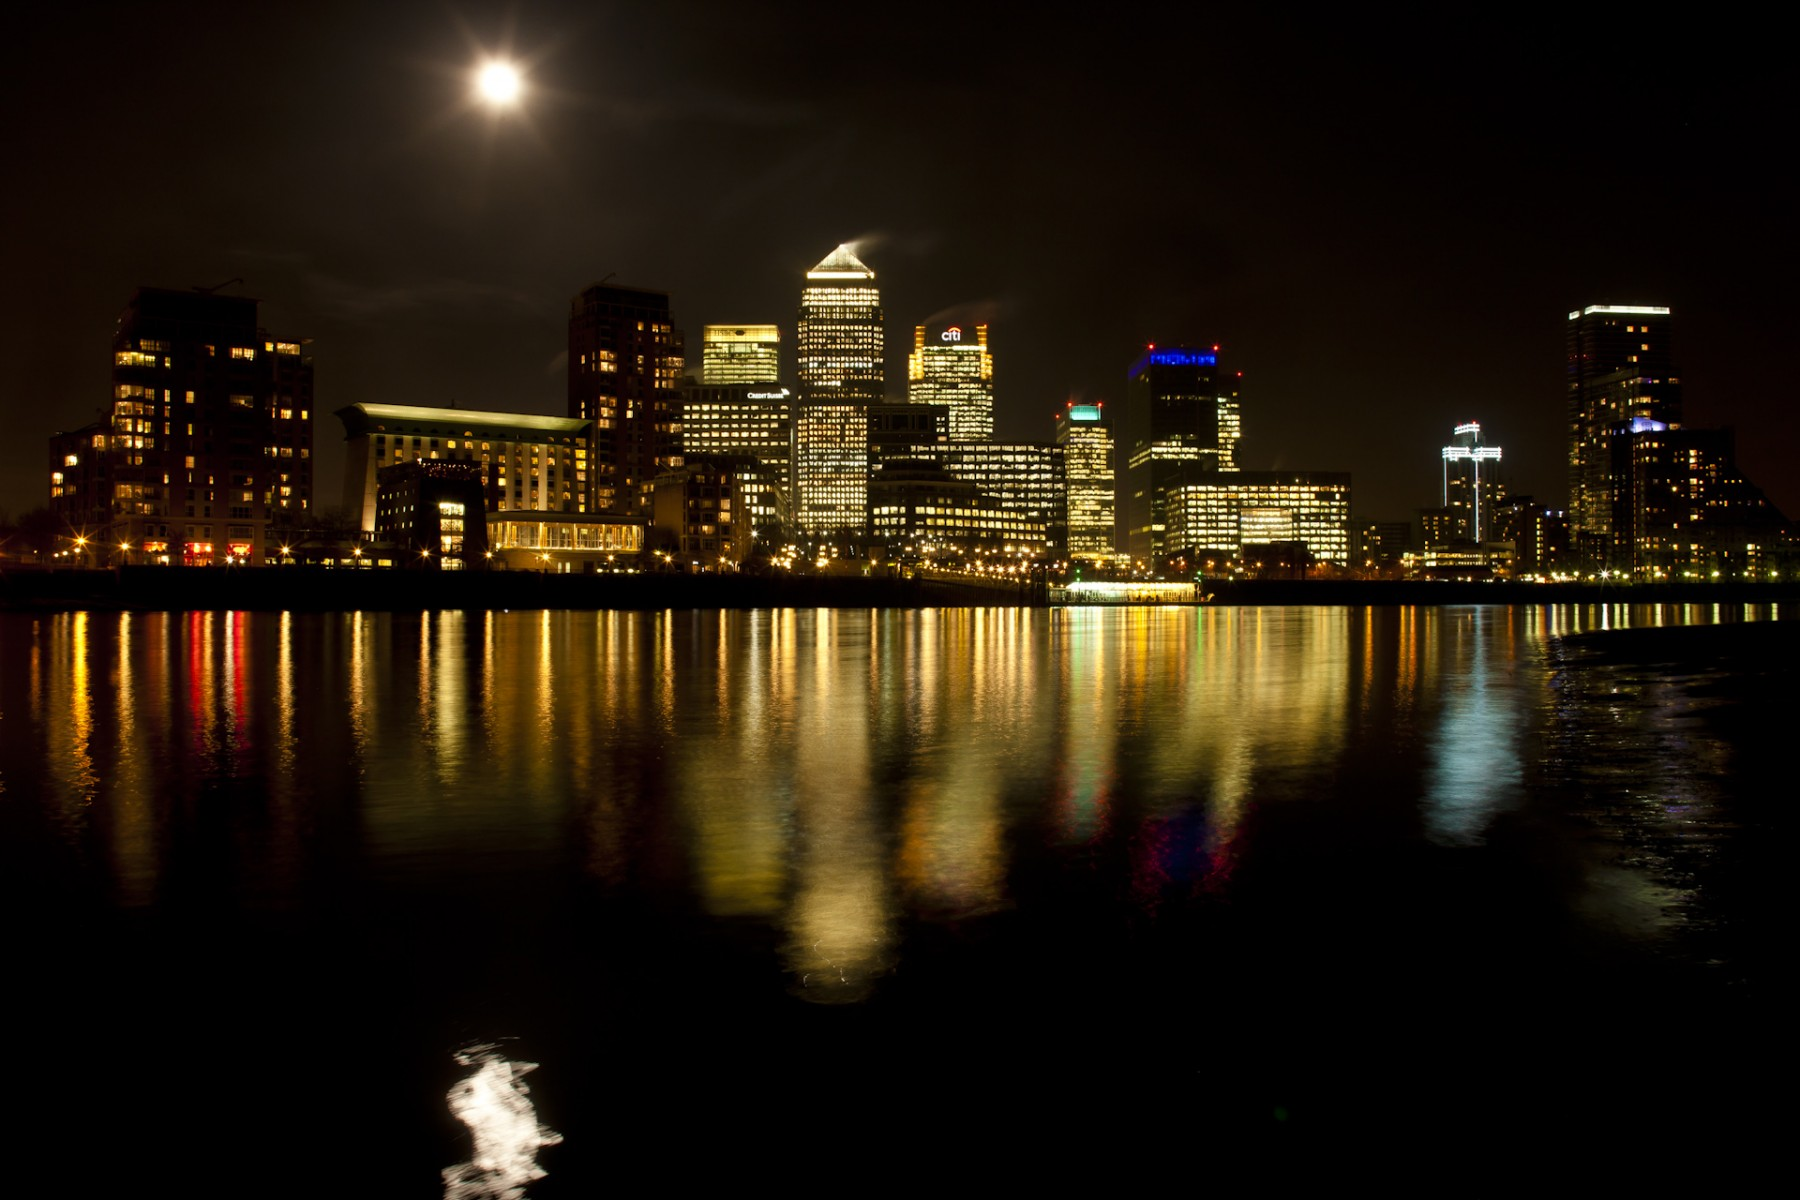 Full Moon Over Canary Wharf